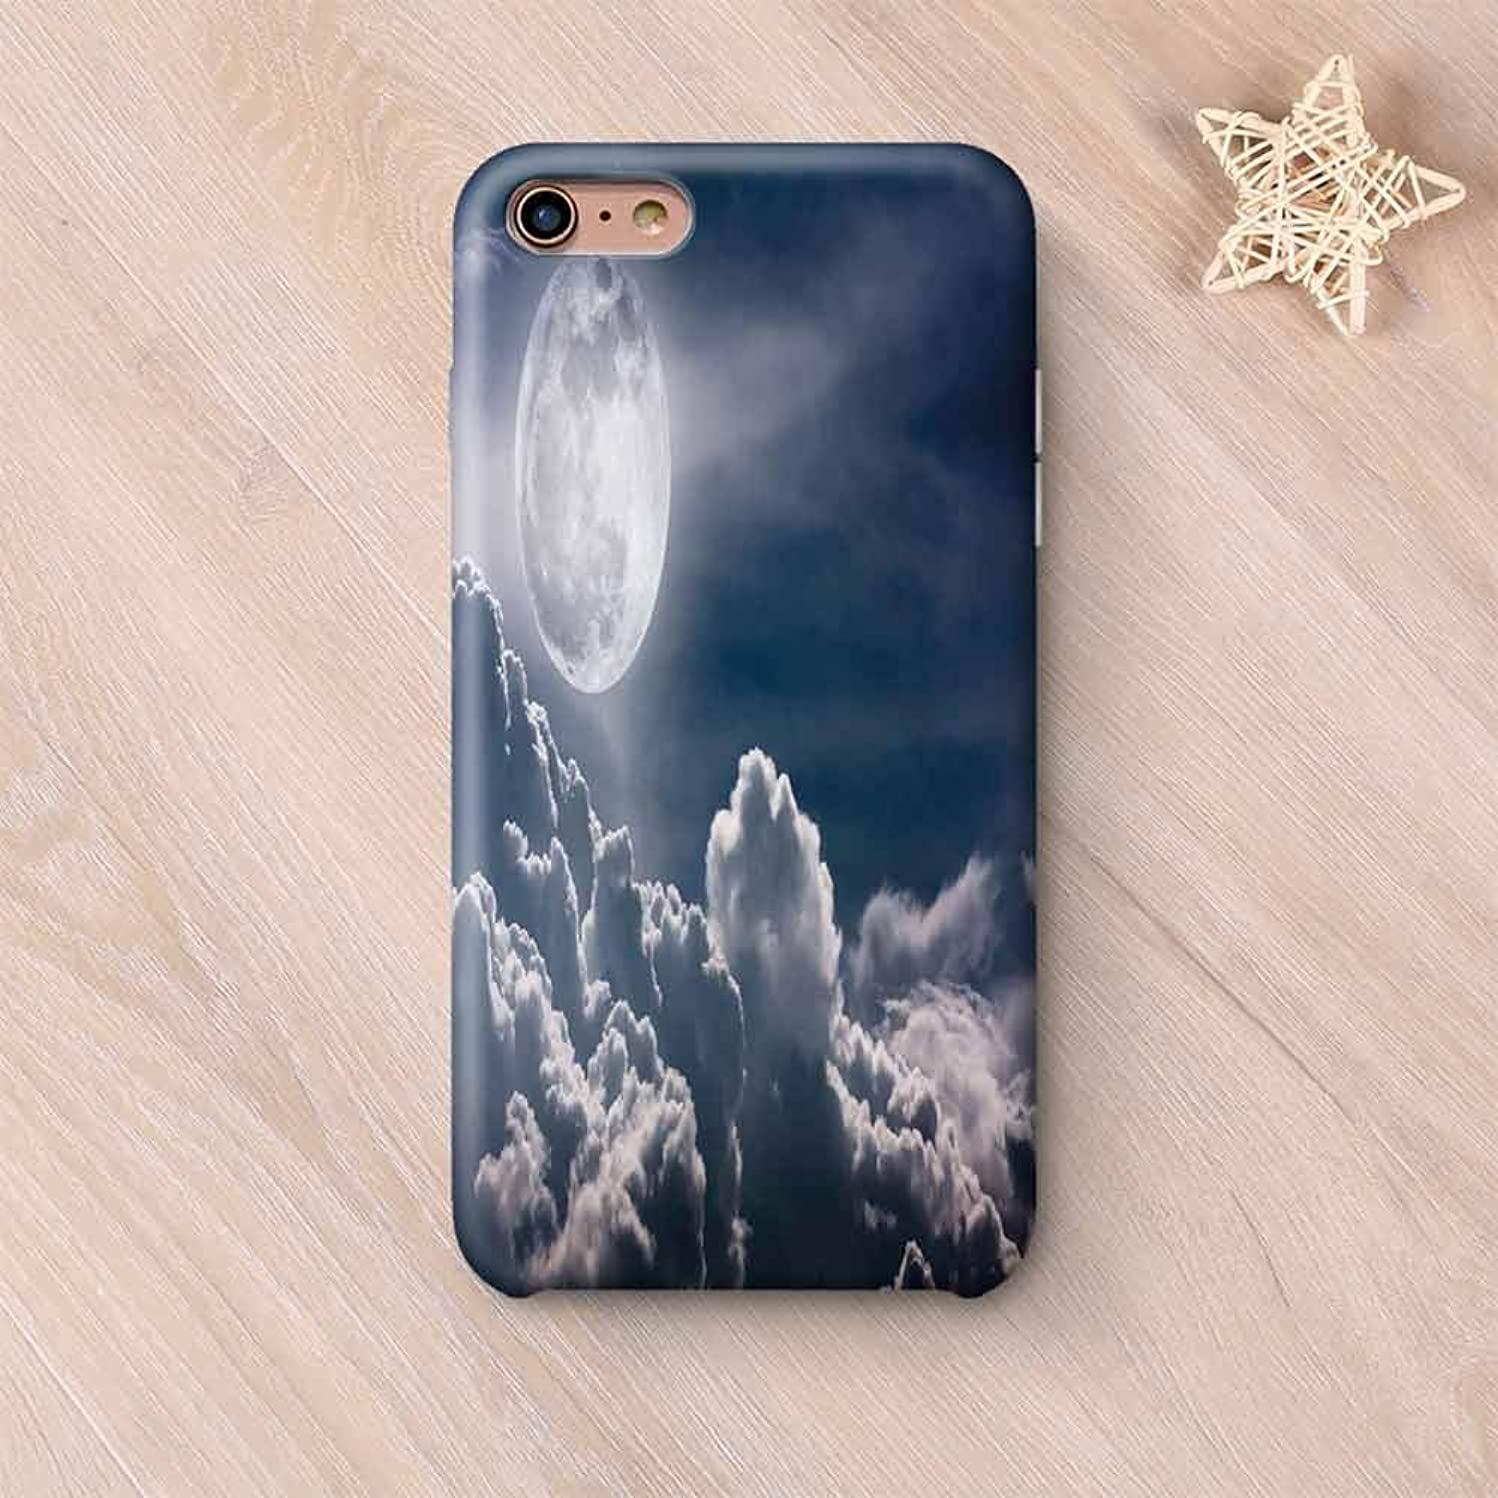 Night Sky Stylish Compatible with iPhone Case,Celestial Photo Big Full Moon and Fluffy Clouds Majestic Dramatic Idyllic Compatible with iPhone X,iPhone 6 Plus / 6s Plus